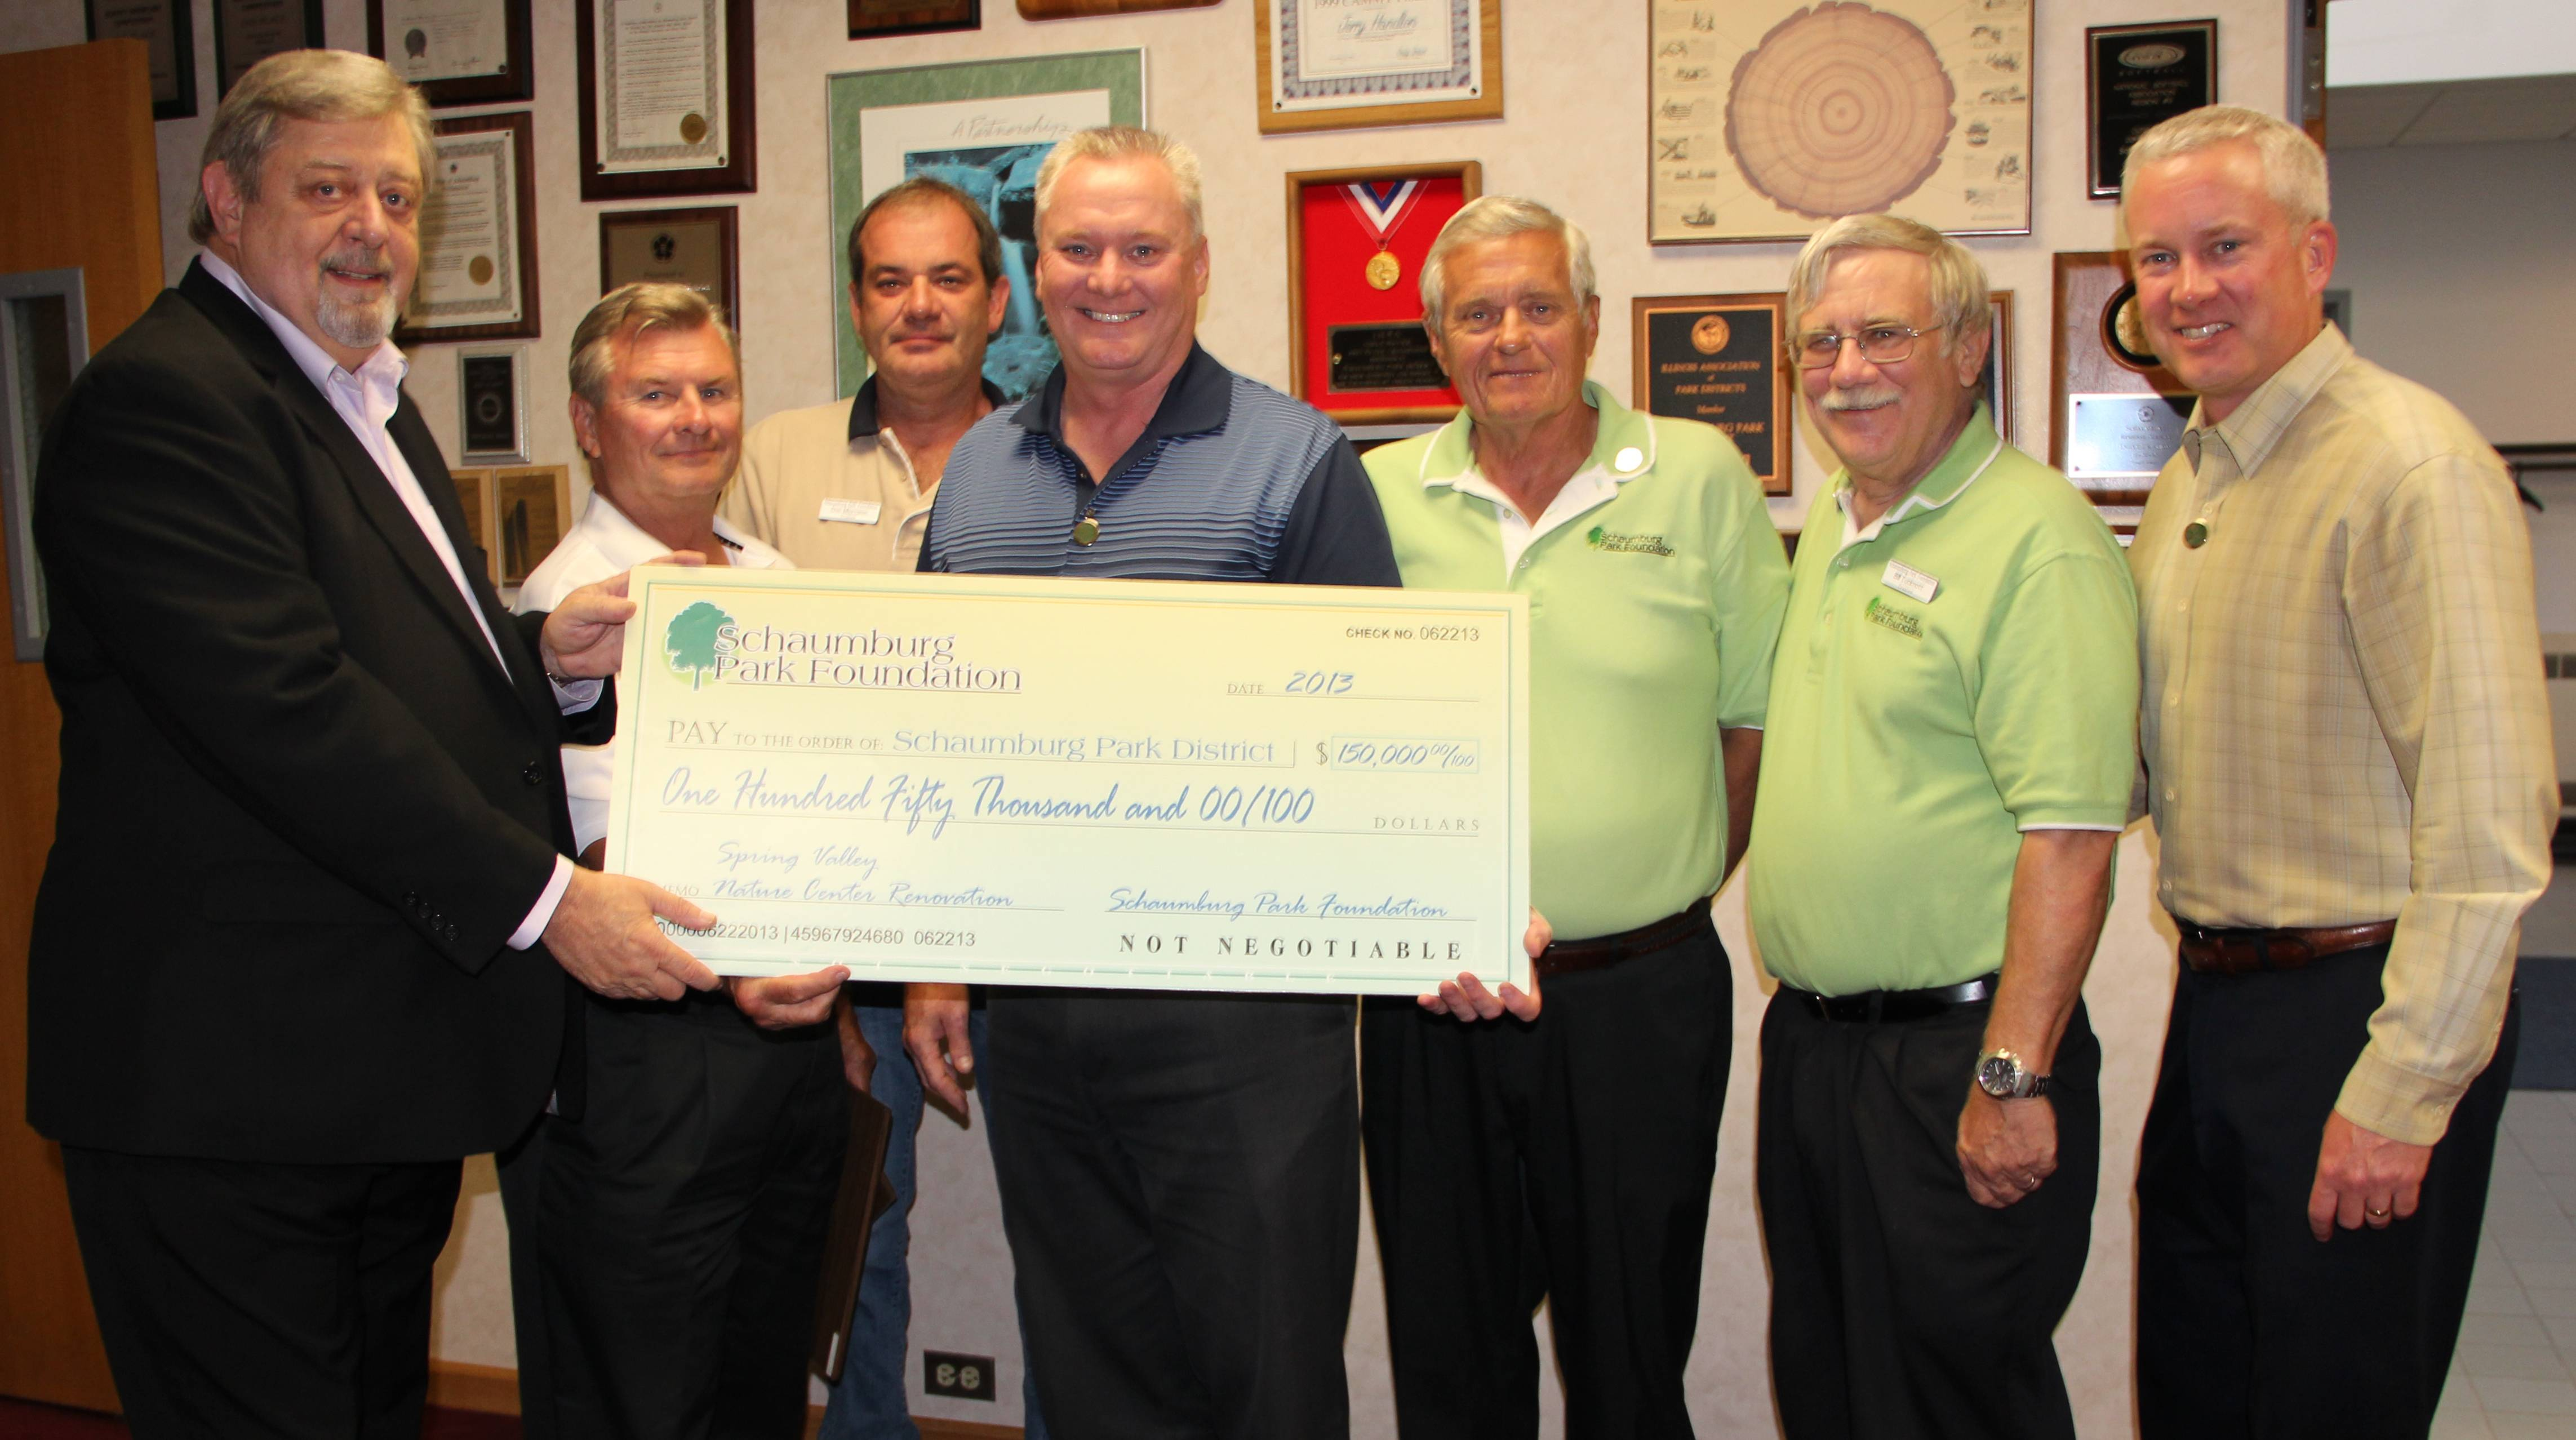 Park Board President Mike Daniels (left) accepts a $150,000 check for the Spring Valley Nature Museum renovations from Schaumburg Park Foundation Board Trustees Glenn Szurgot and Don Morrison, Vice Chairman Brian Bieschke, Trustees Dave Johnson and Bill Tucknott, and President Tony LaFrenere.